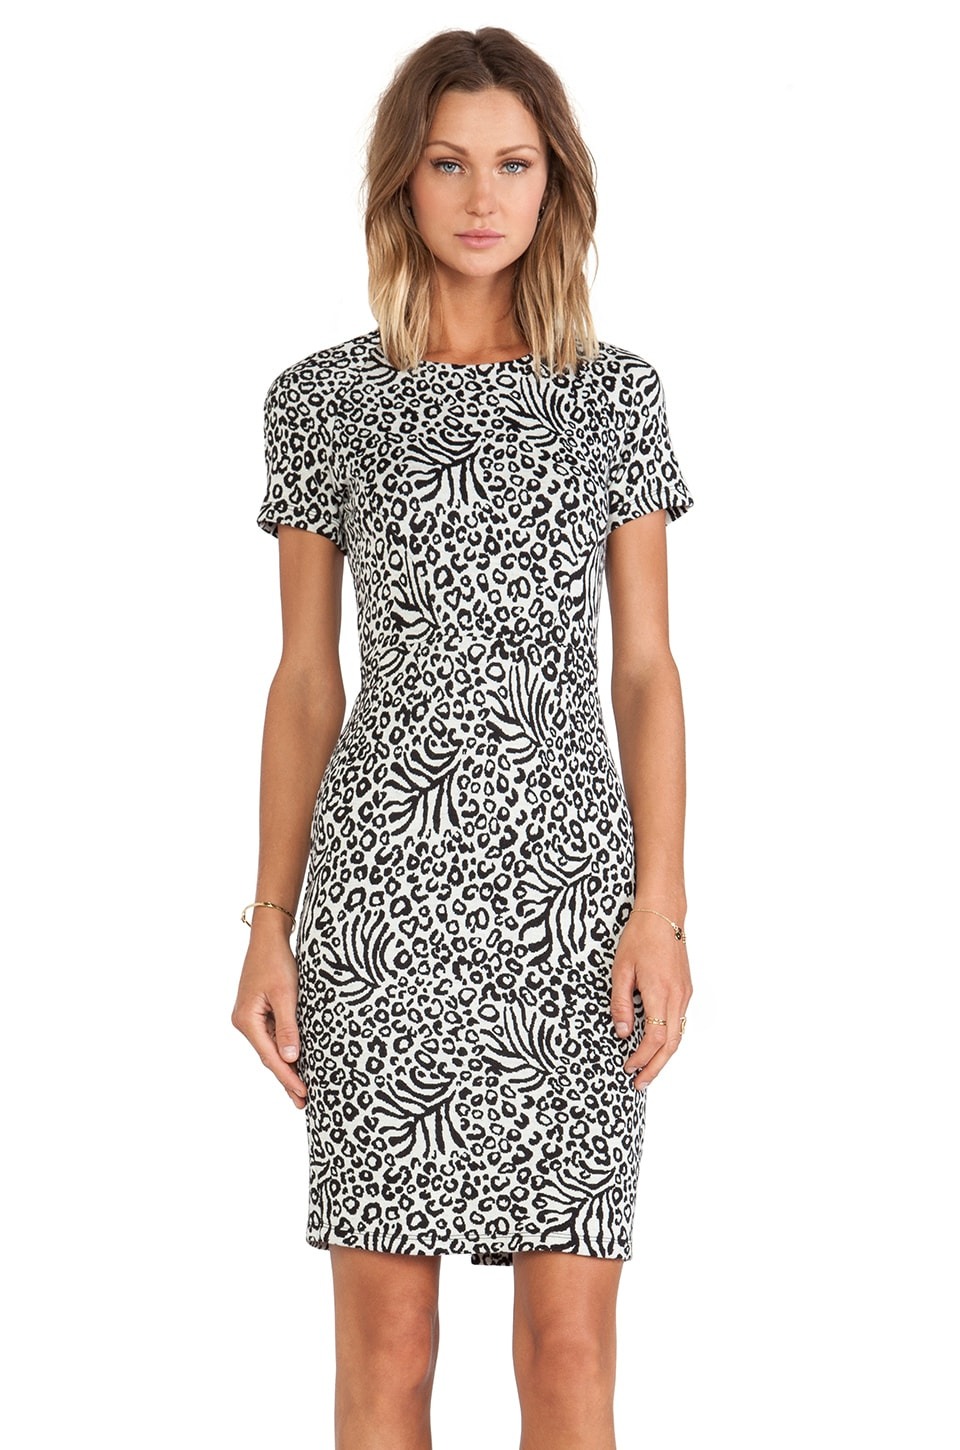 Essentiel Antwerp Happy Bday Zig Zag Milano Dress in Black & White